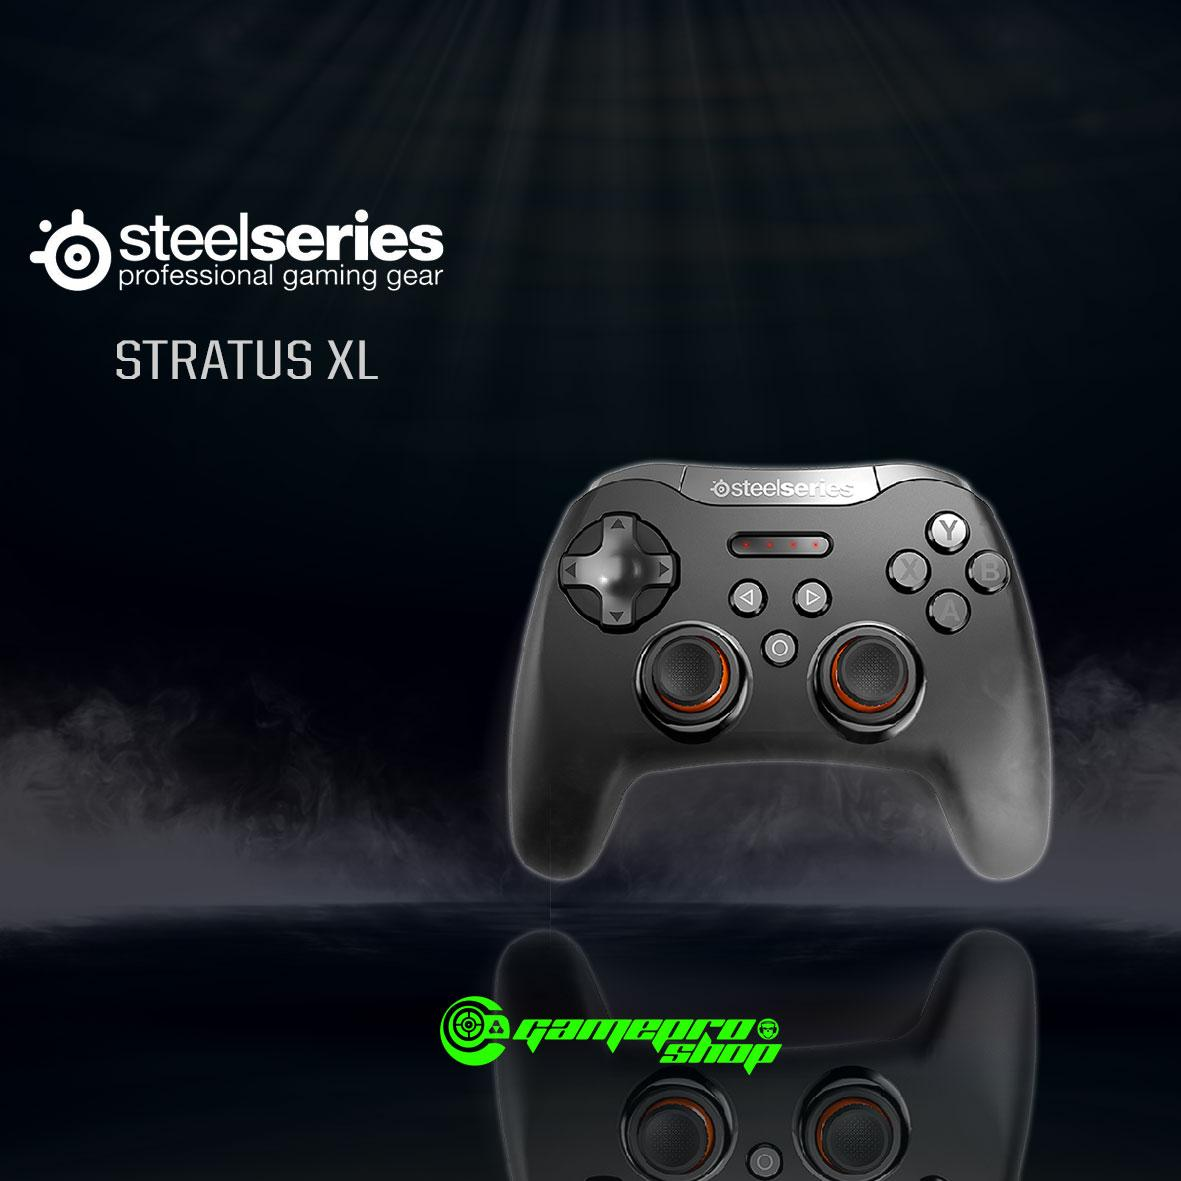 Steelseries Stratus XL for Android and PC *NDP PROMO*